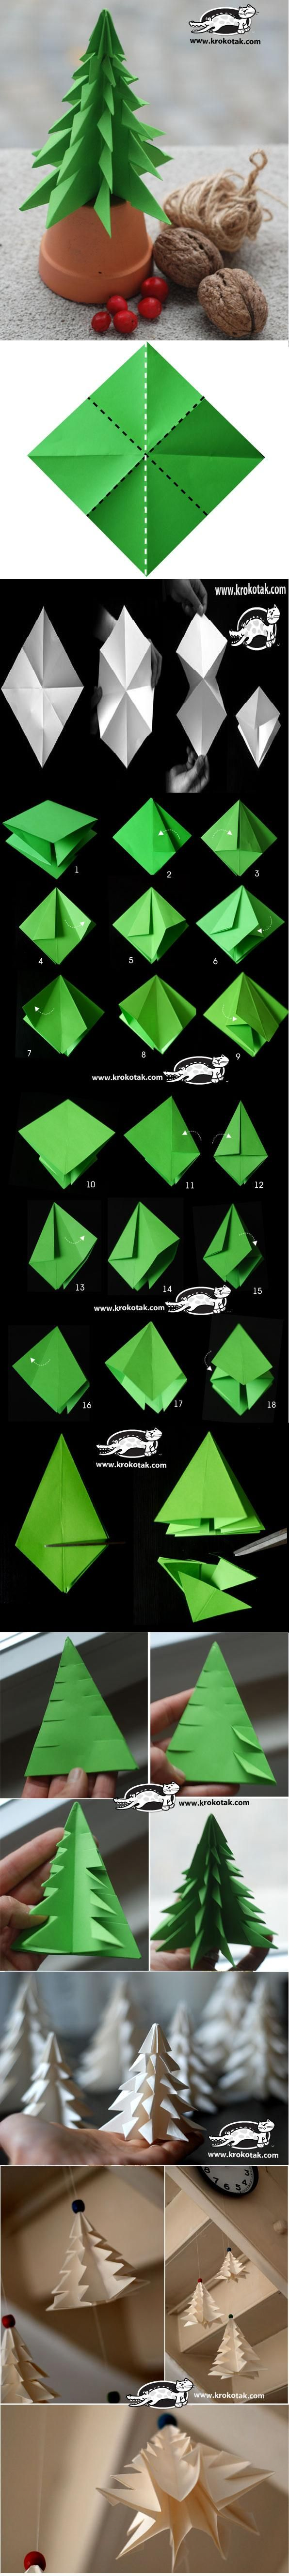 How to Fold a Fir Tree Complete Tutorial